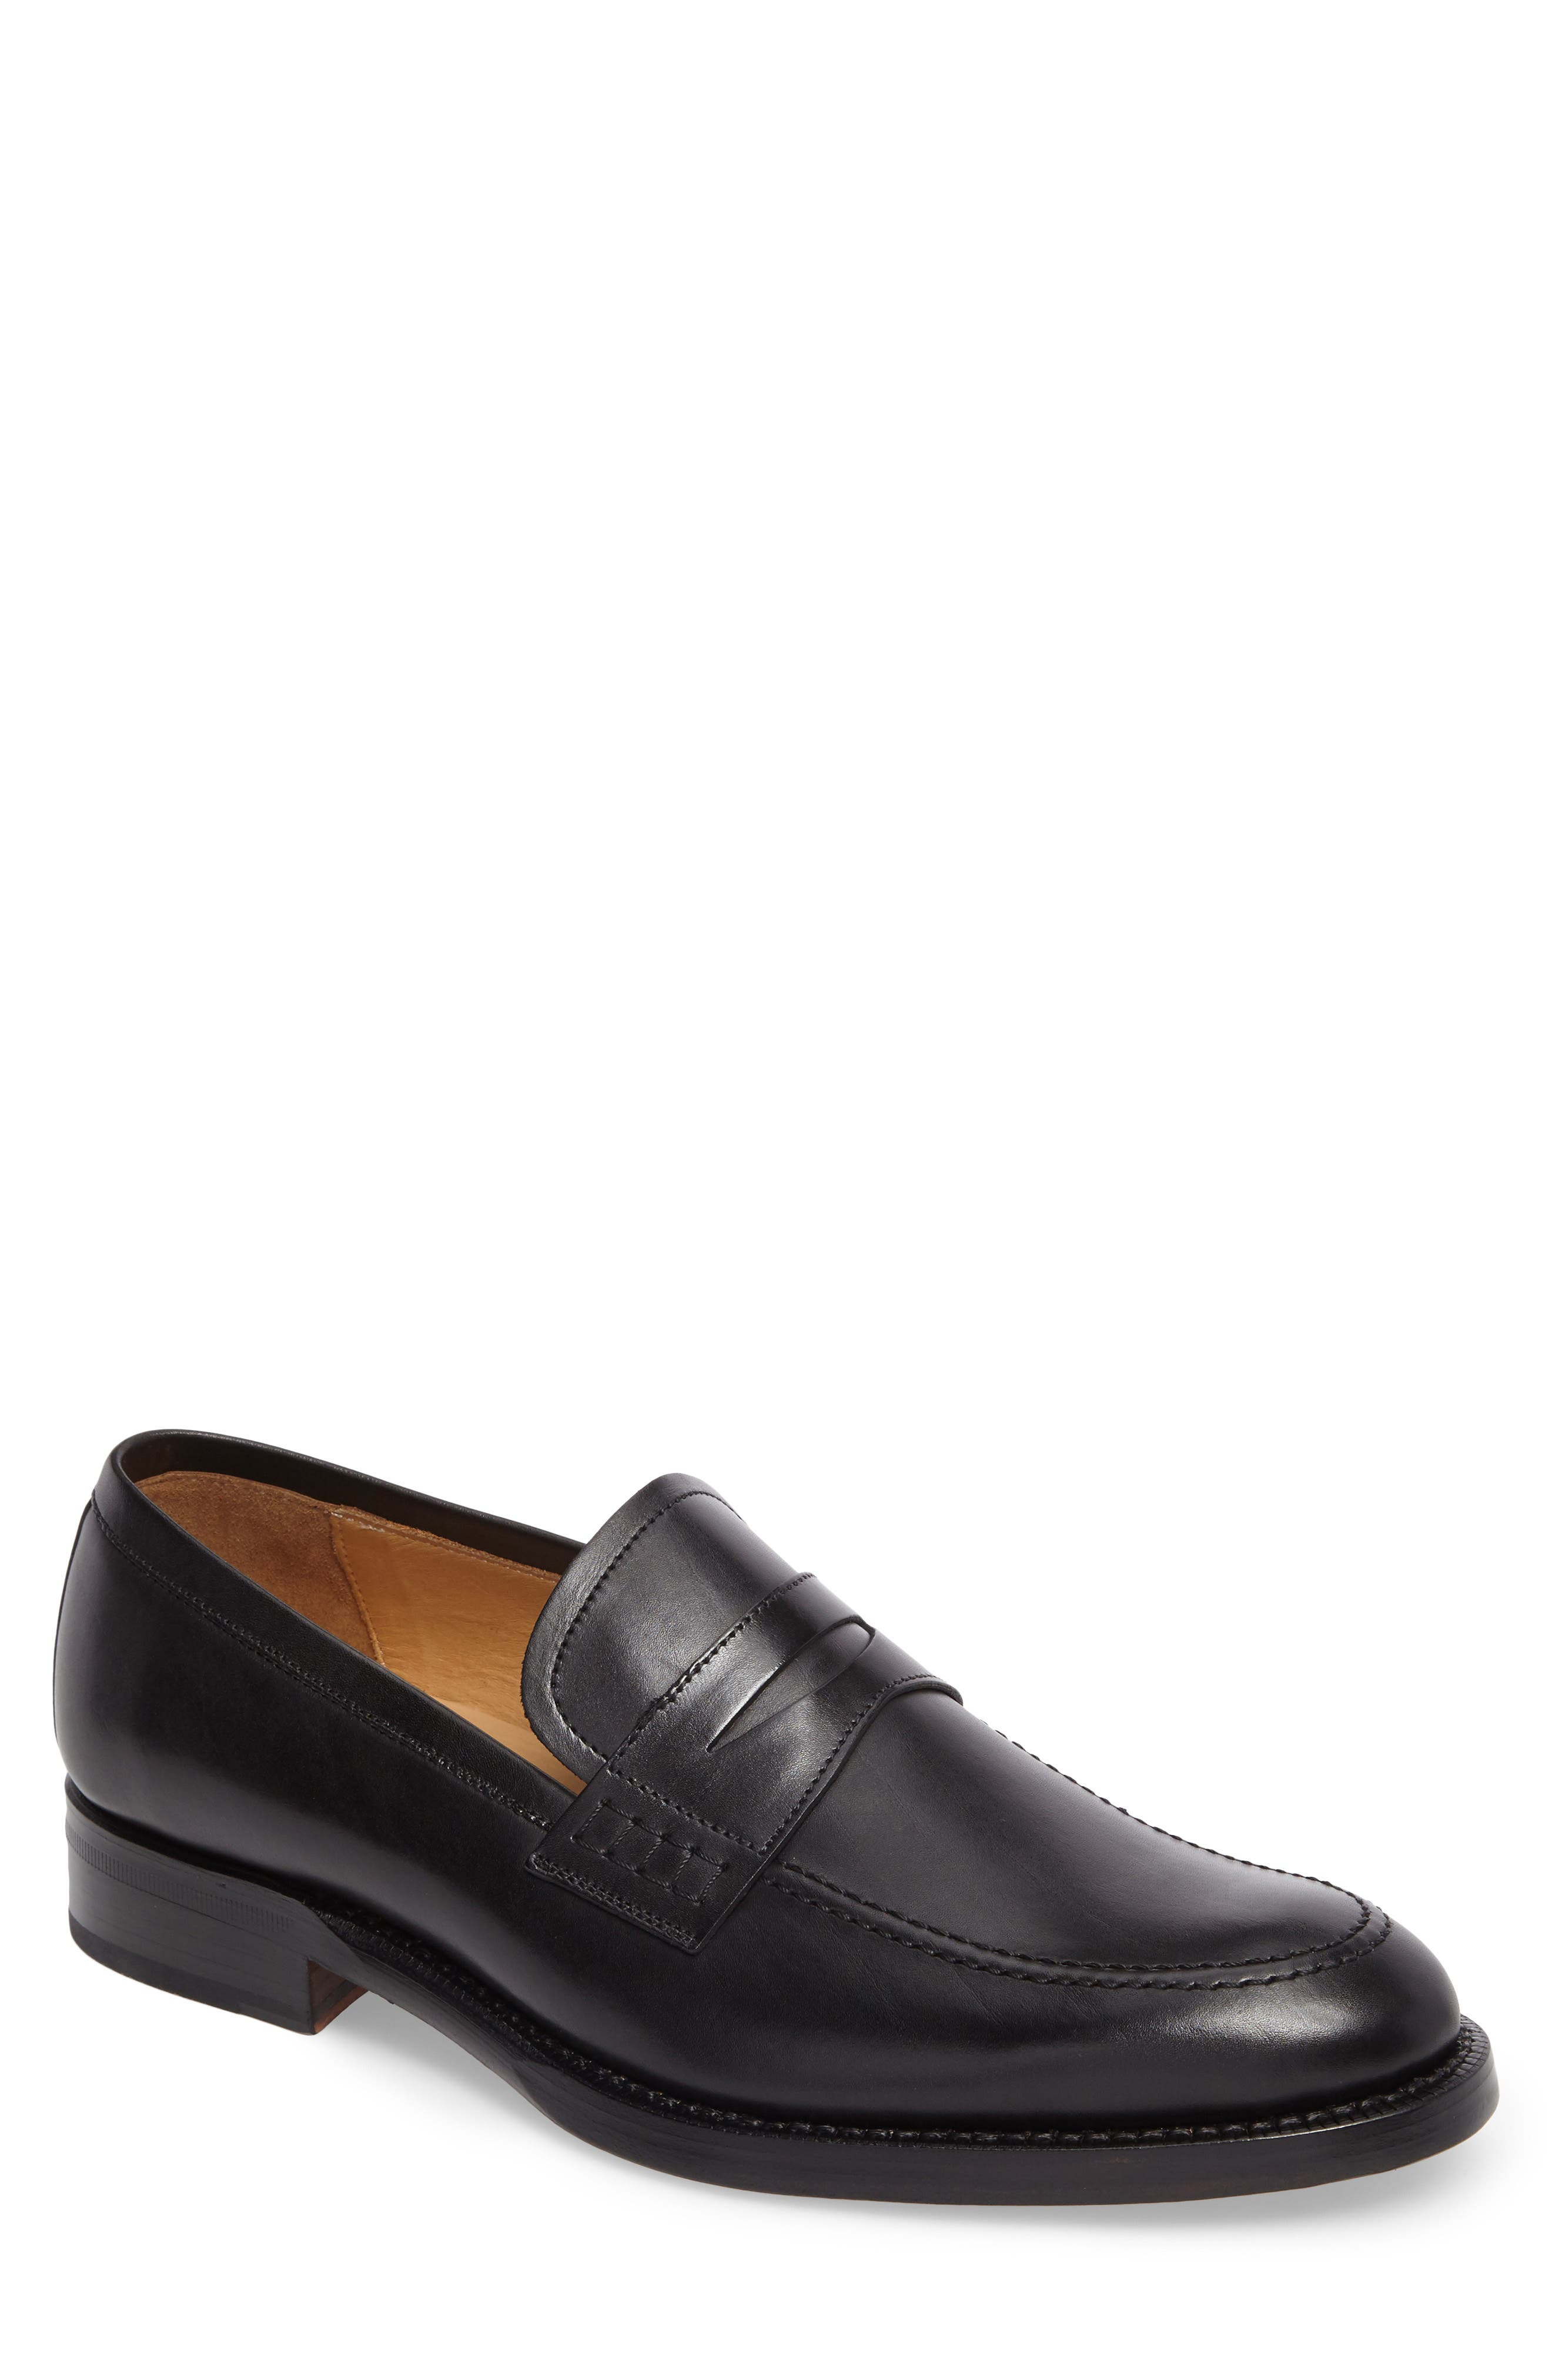 Archie Penny Loafer,                             Main thumbnail 1, color,                             001